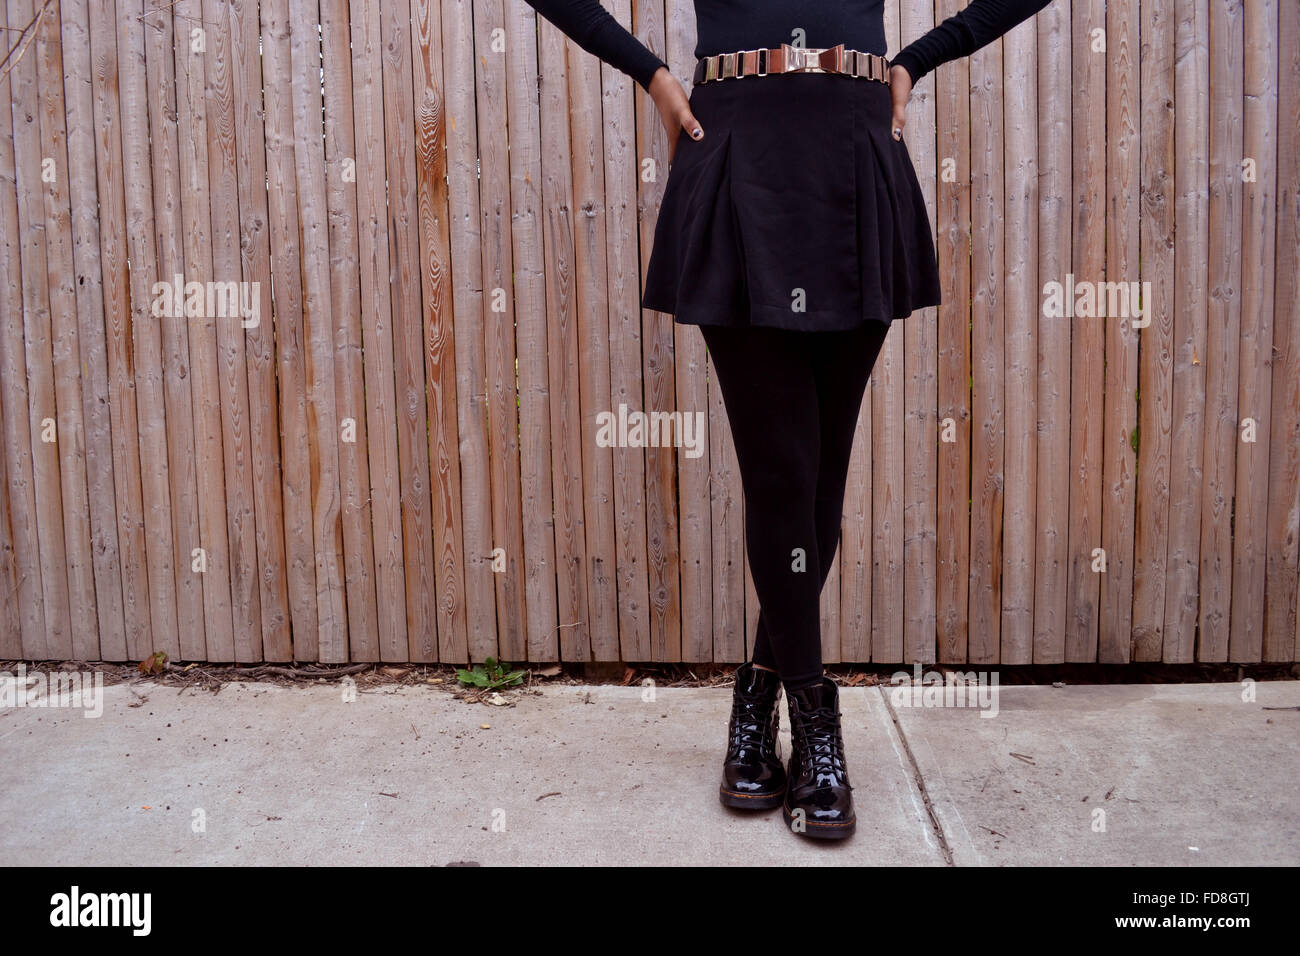 Low Section Of Woman Standing On Sidewalk With Legs Crossed At Ankle Against Wooden Fence - Stock Image